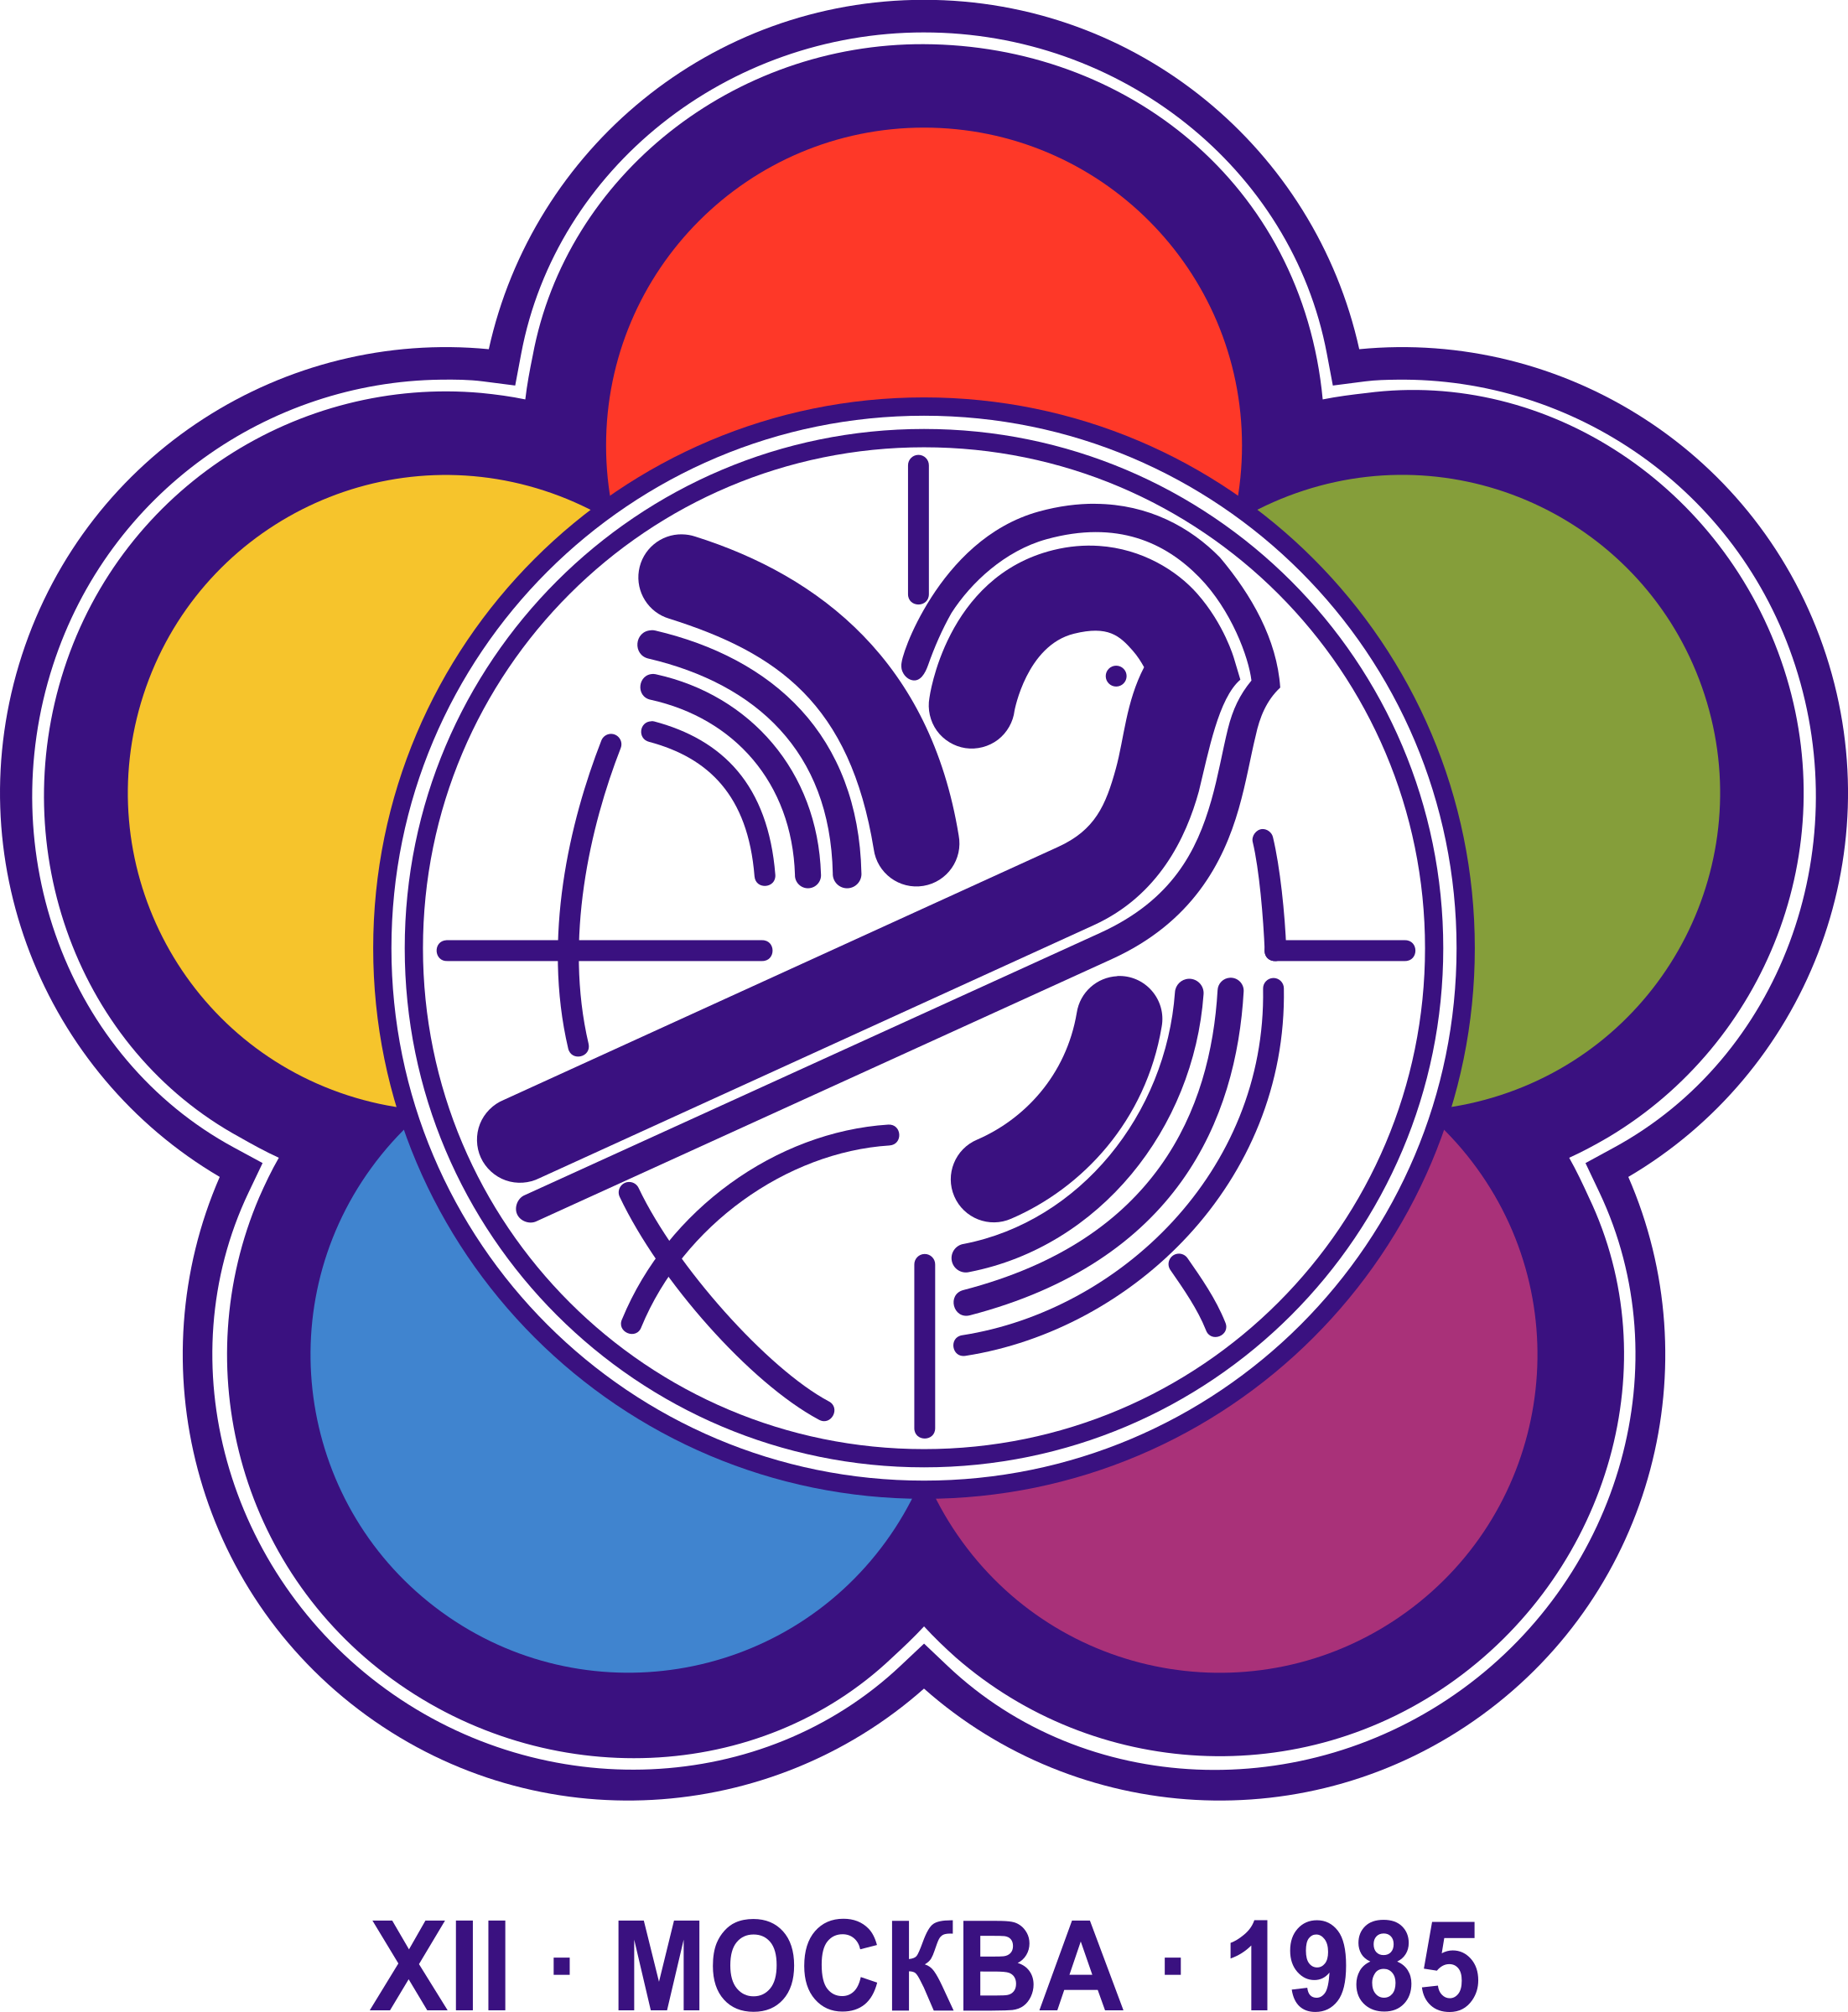 Xii world of youth. Festival clipart icon